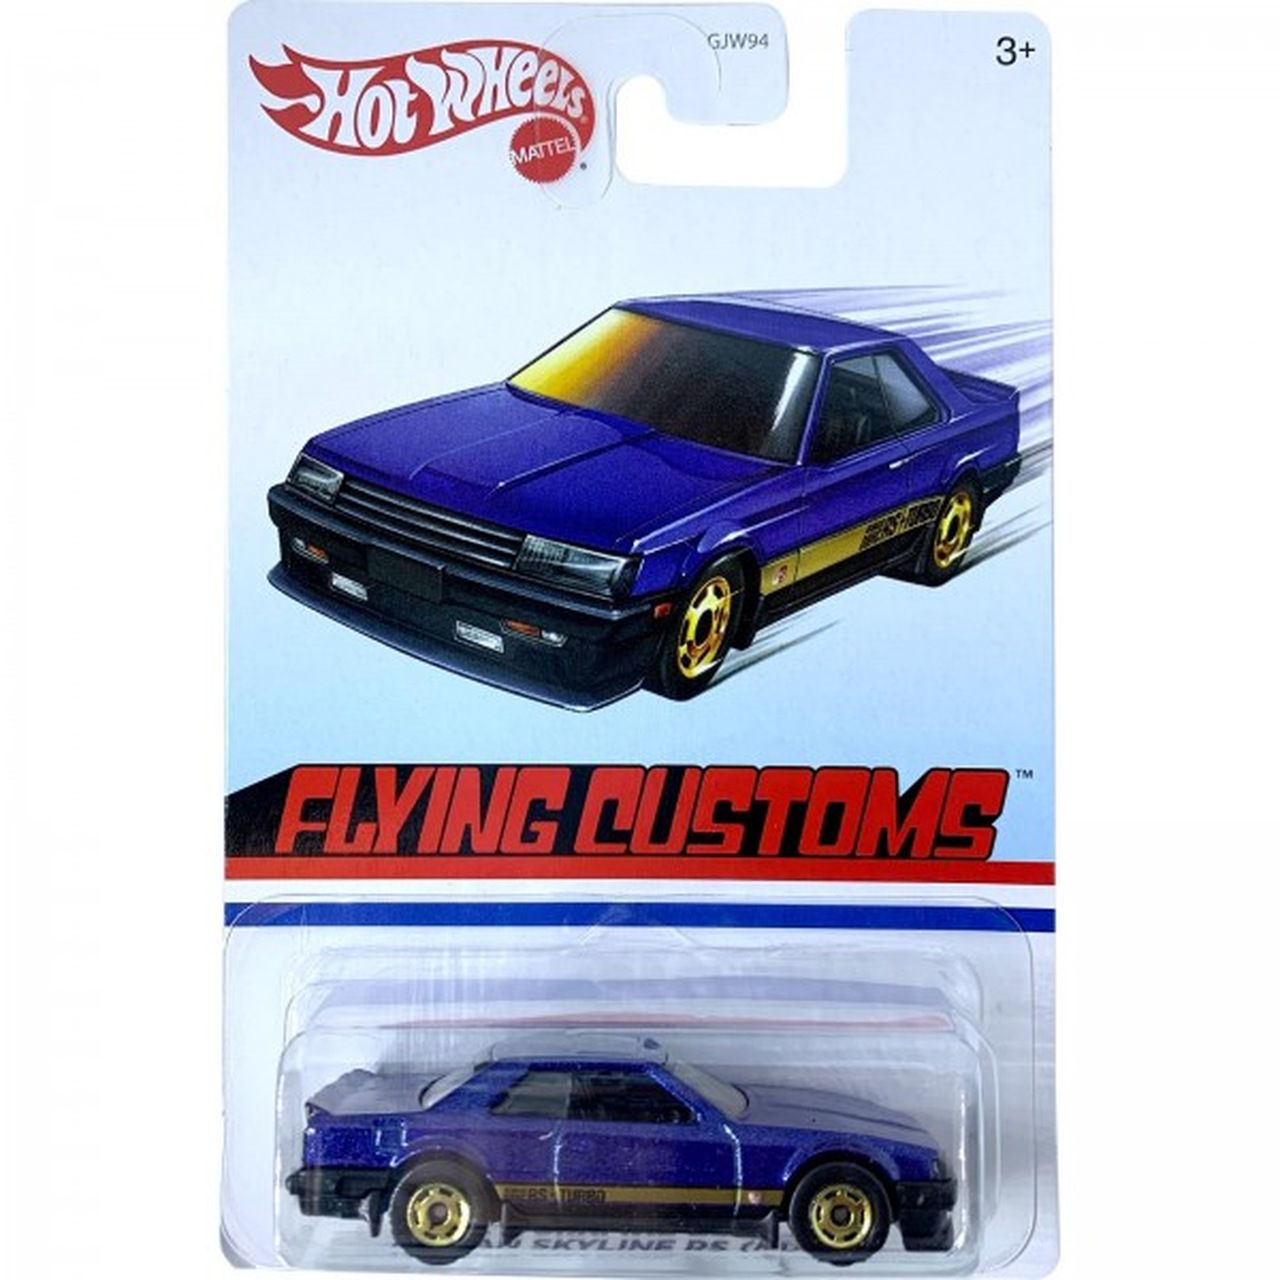 Carrinho Nissan Skyline RS (KDR30) Flying Customs (GJW94)- Hot Wheels